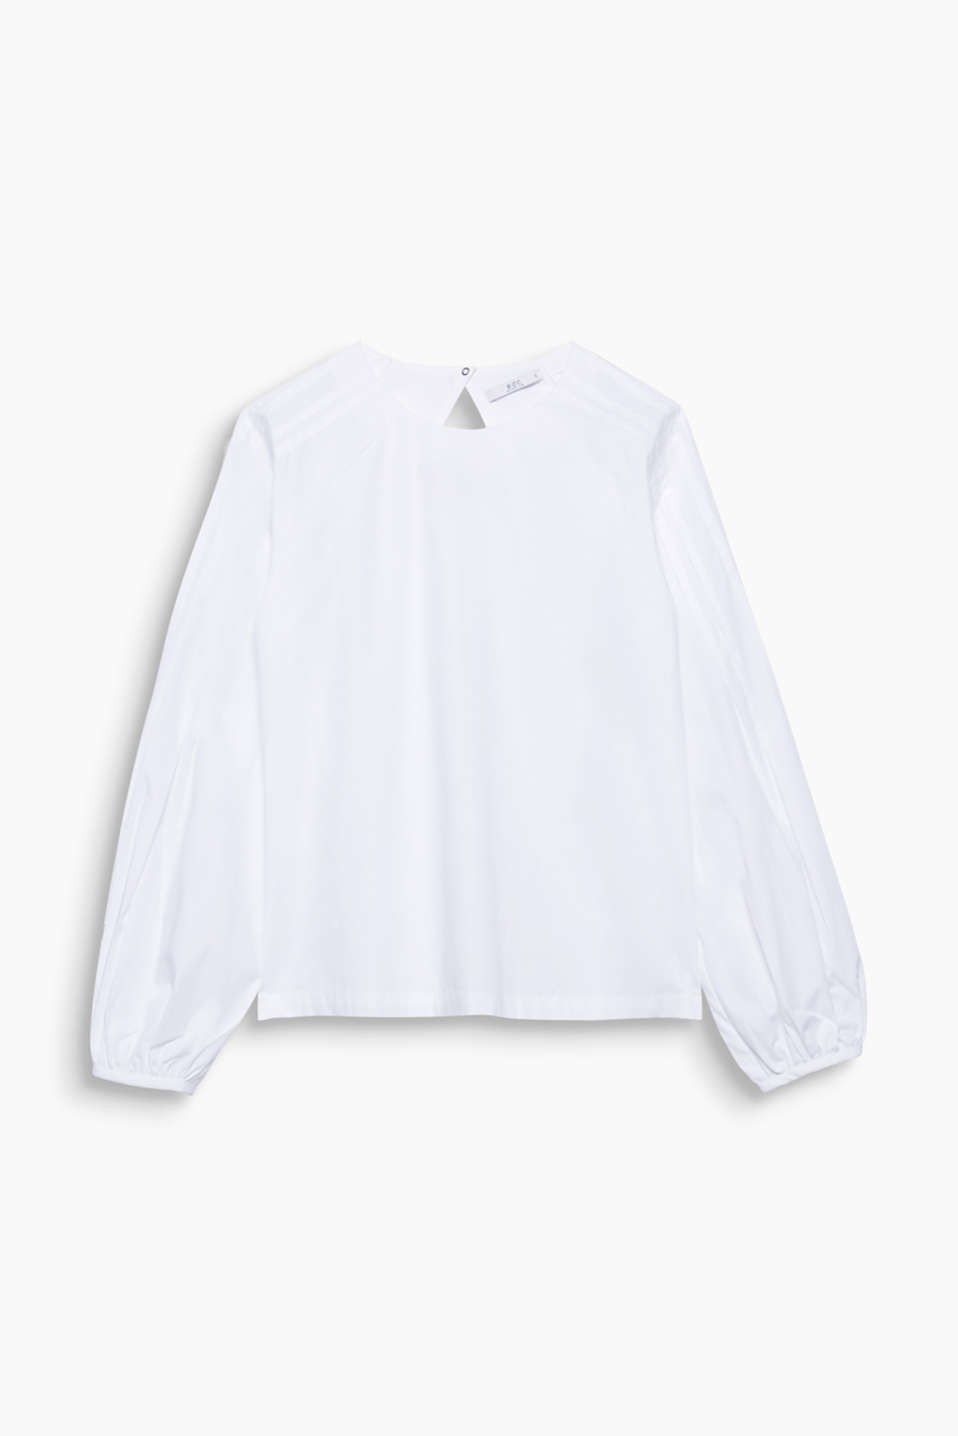 This pure cotton blouse looks beautifully fresh thanks to the pintucks on the shoulders and the wide balloon sleeves!